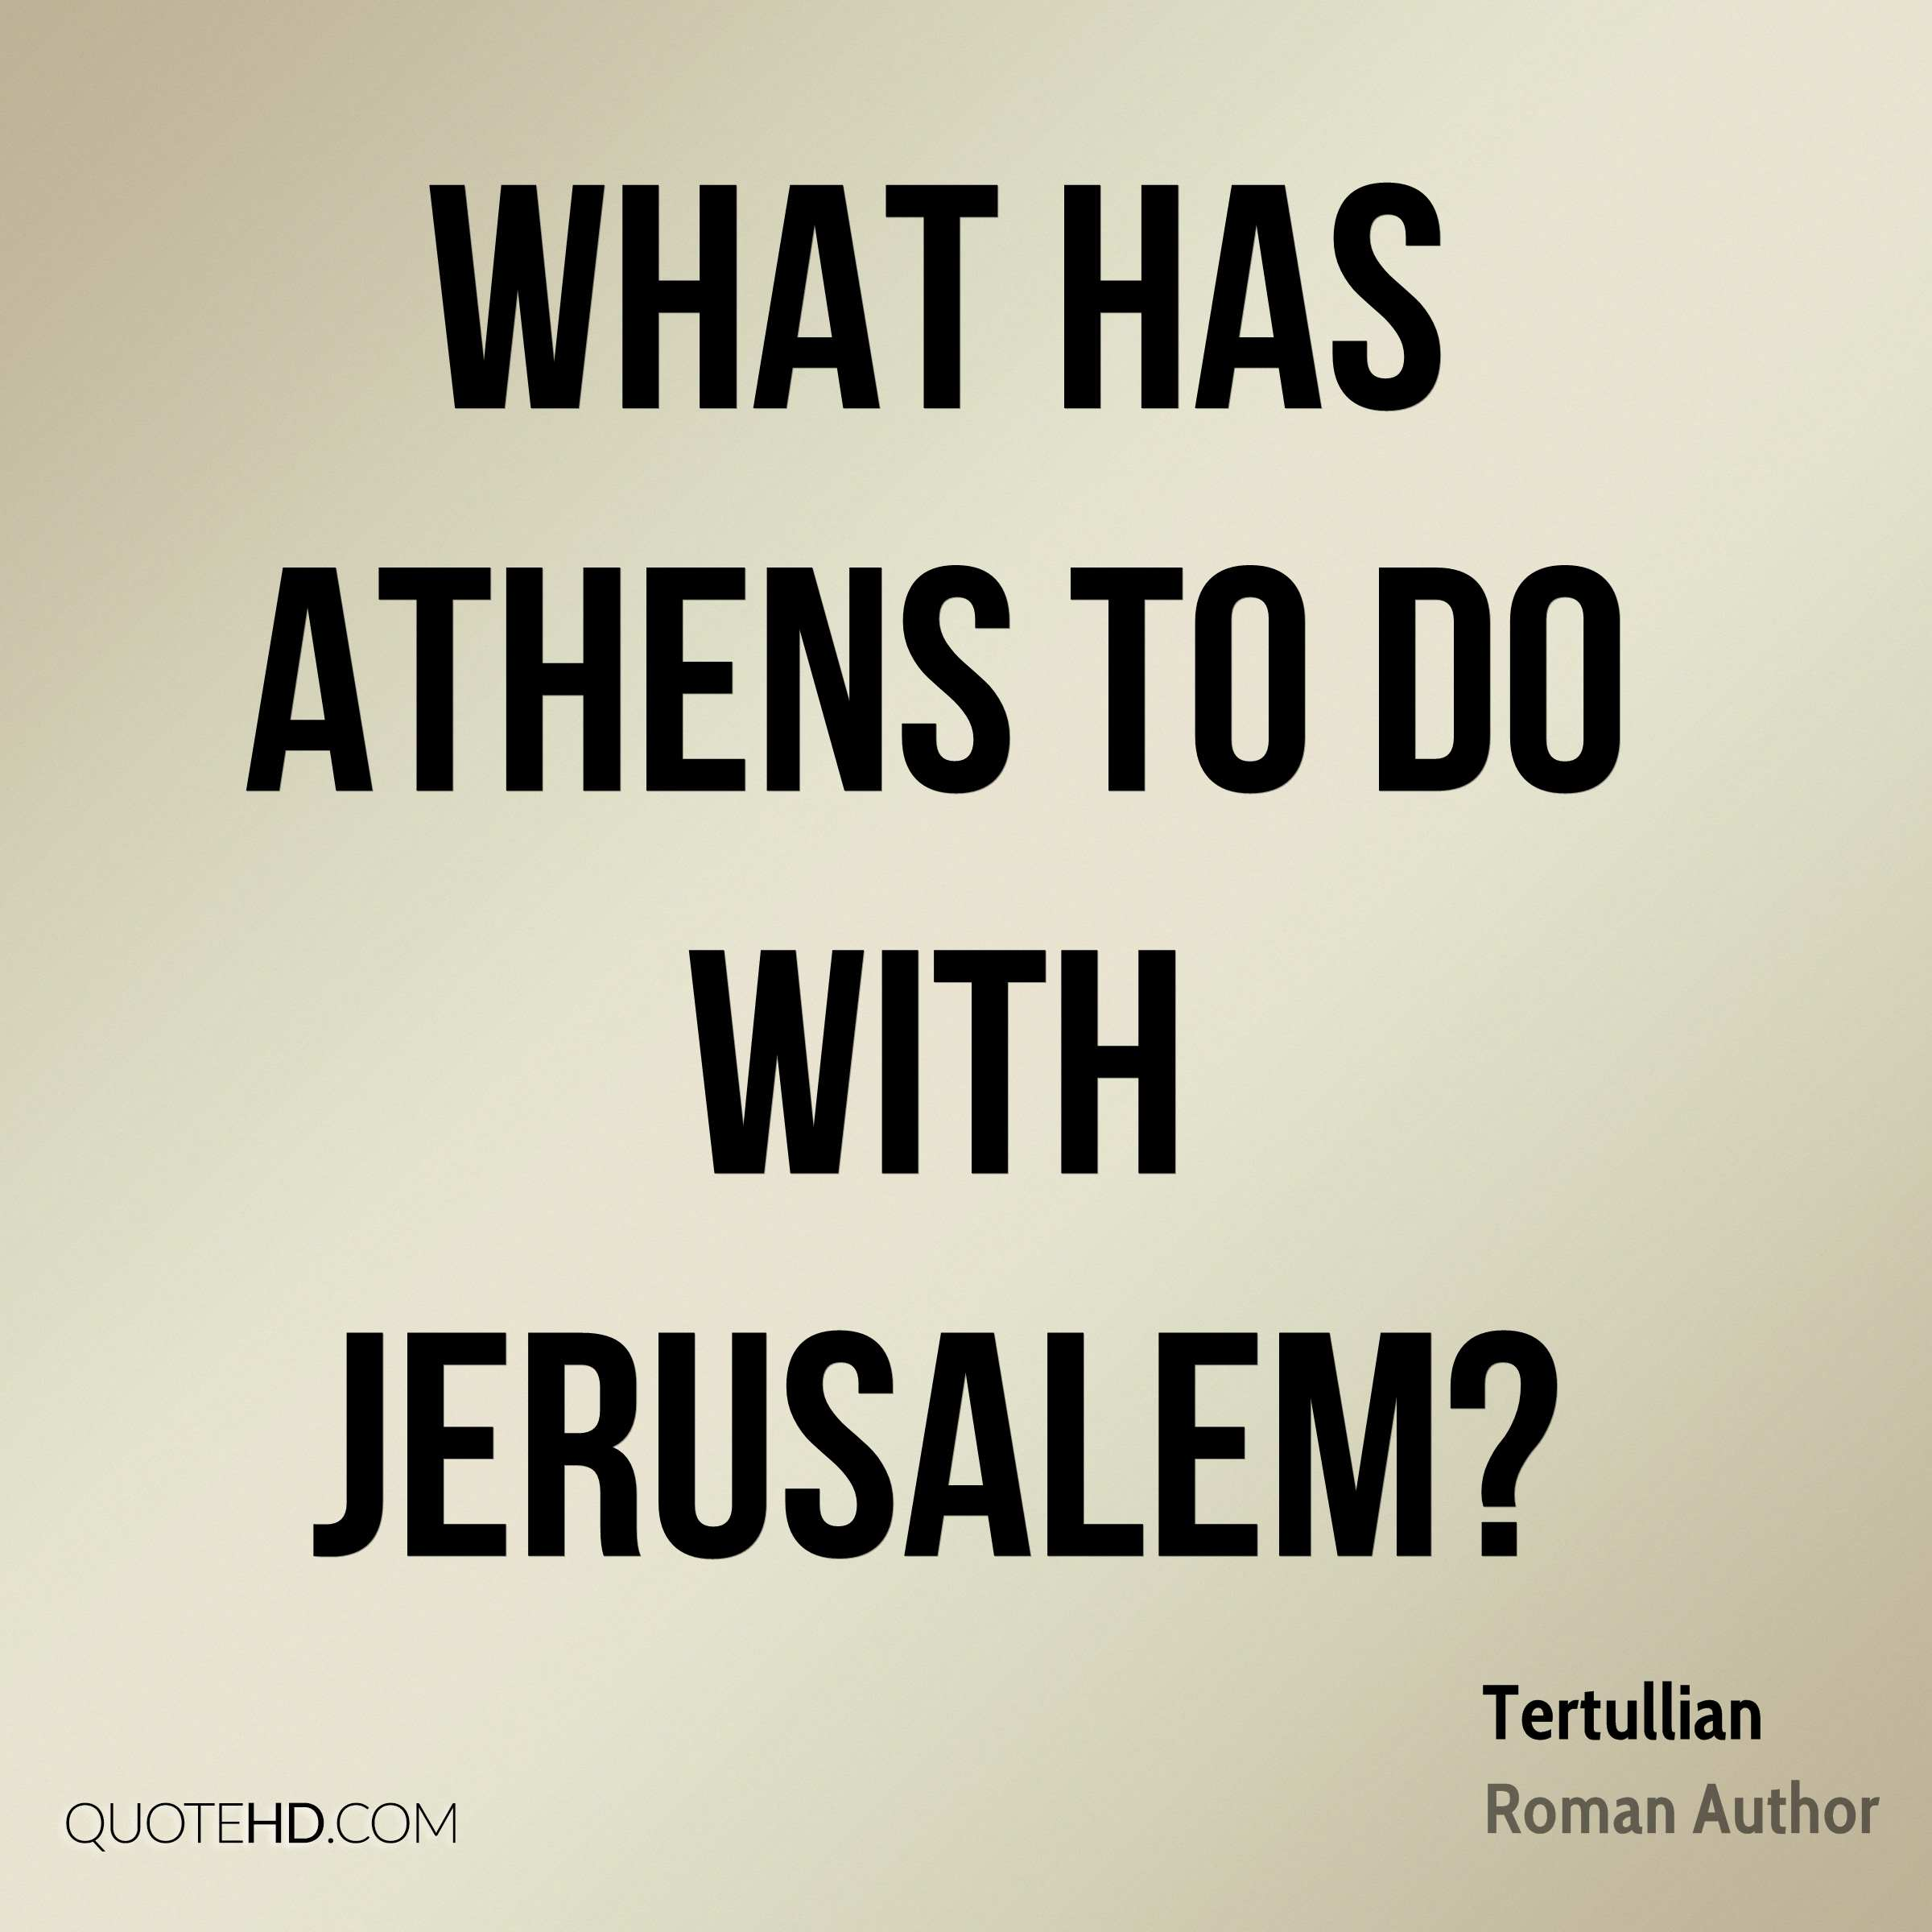 What has Athens to do with Jerusalem?